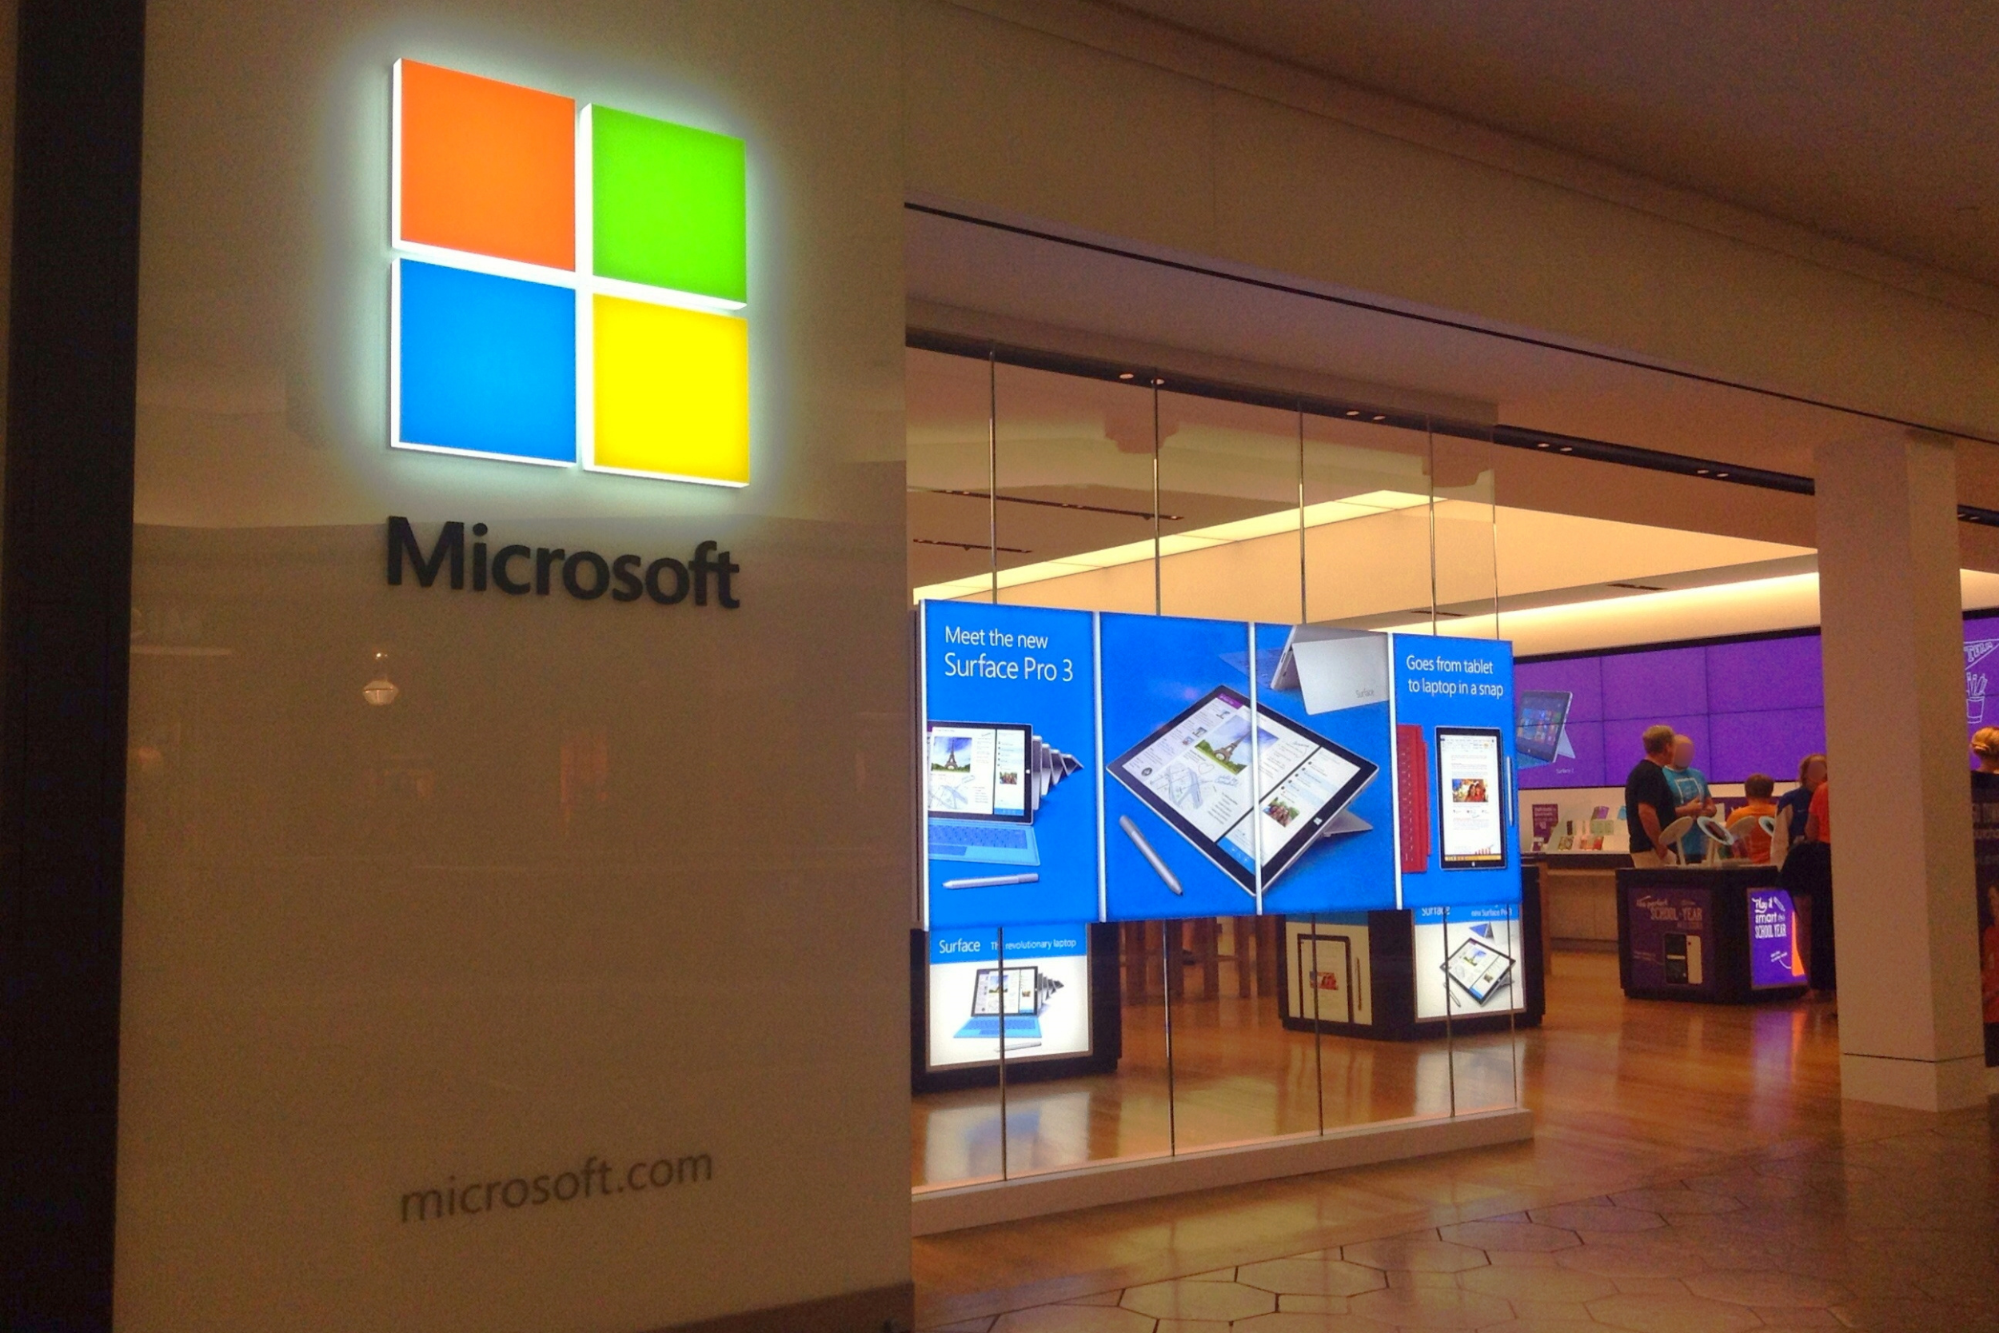 election security, Microsoft software